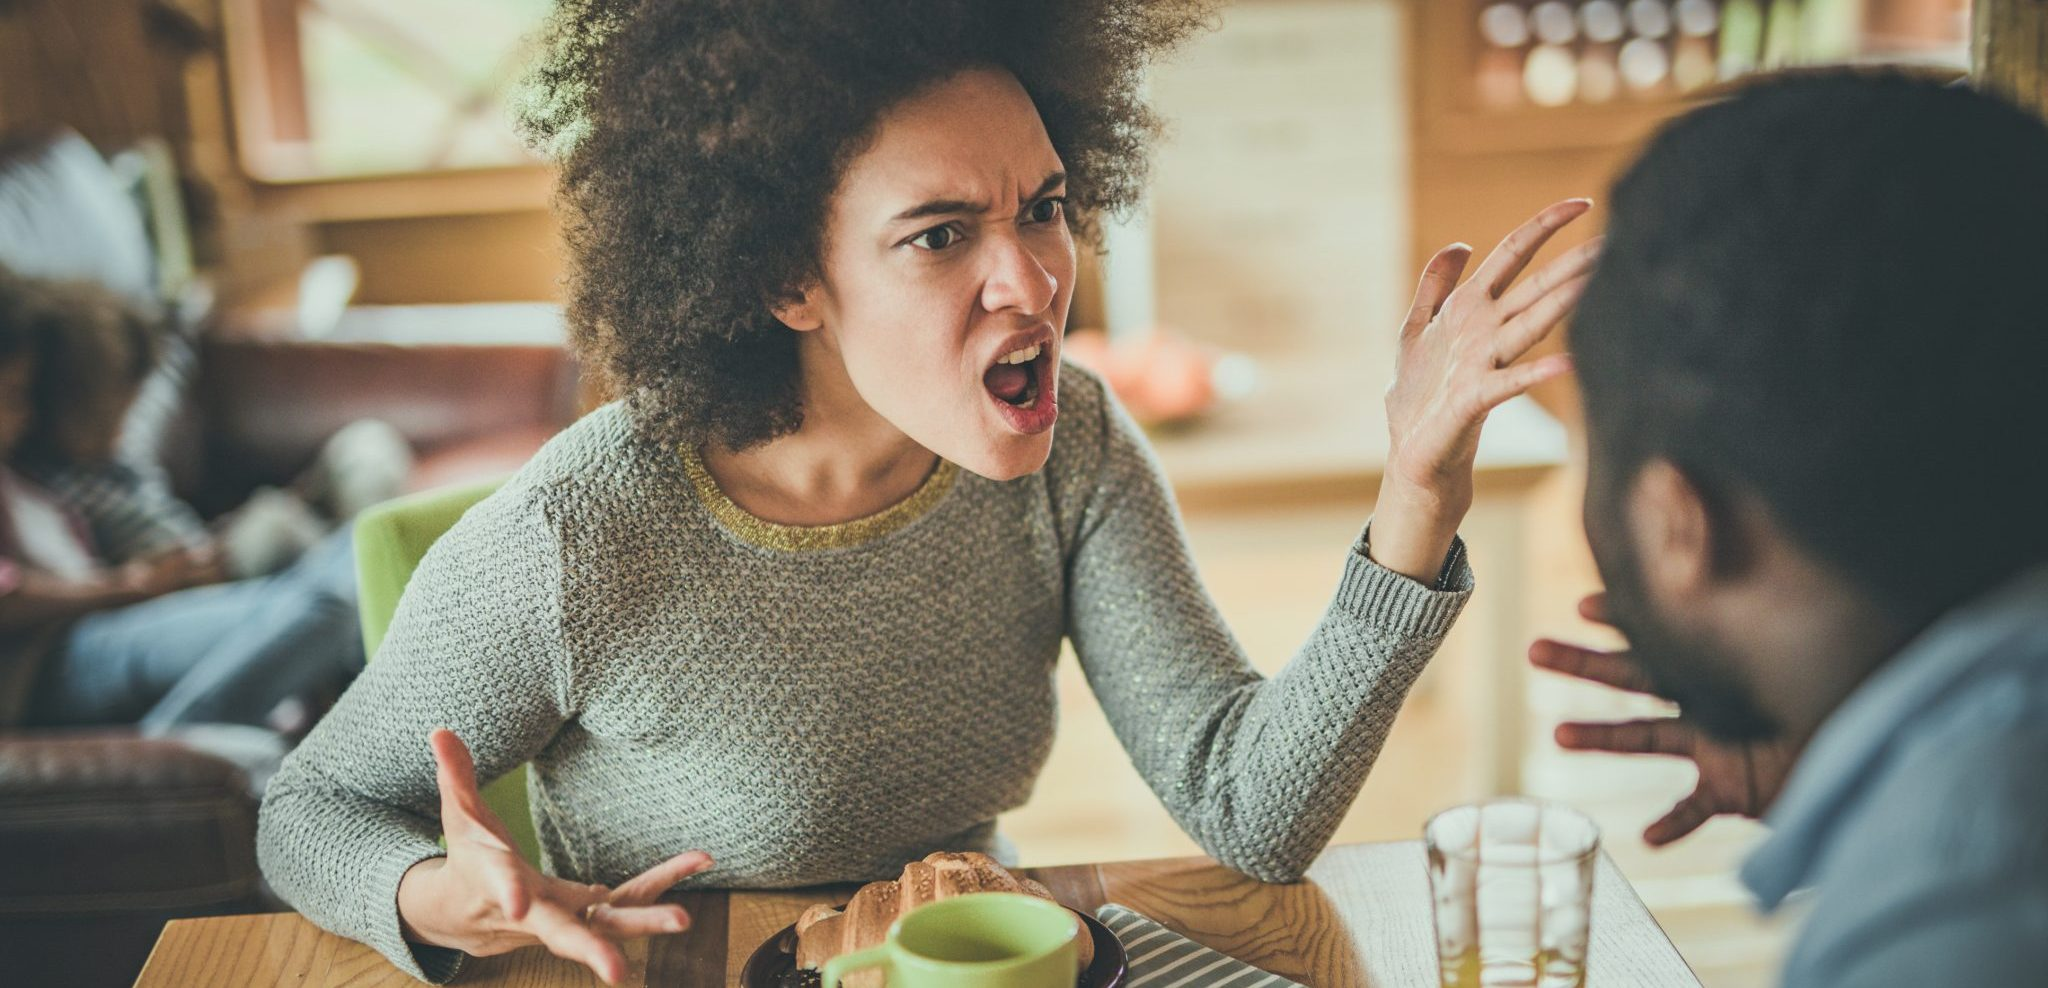 8 Types of Anger: What They Mean and What to Do about Them